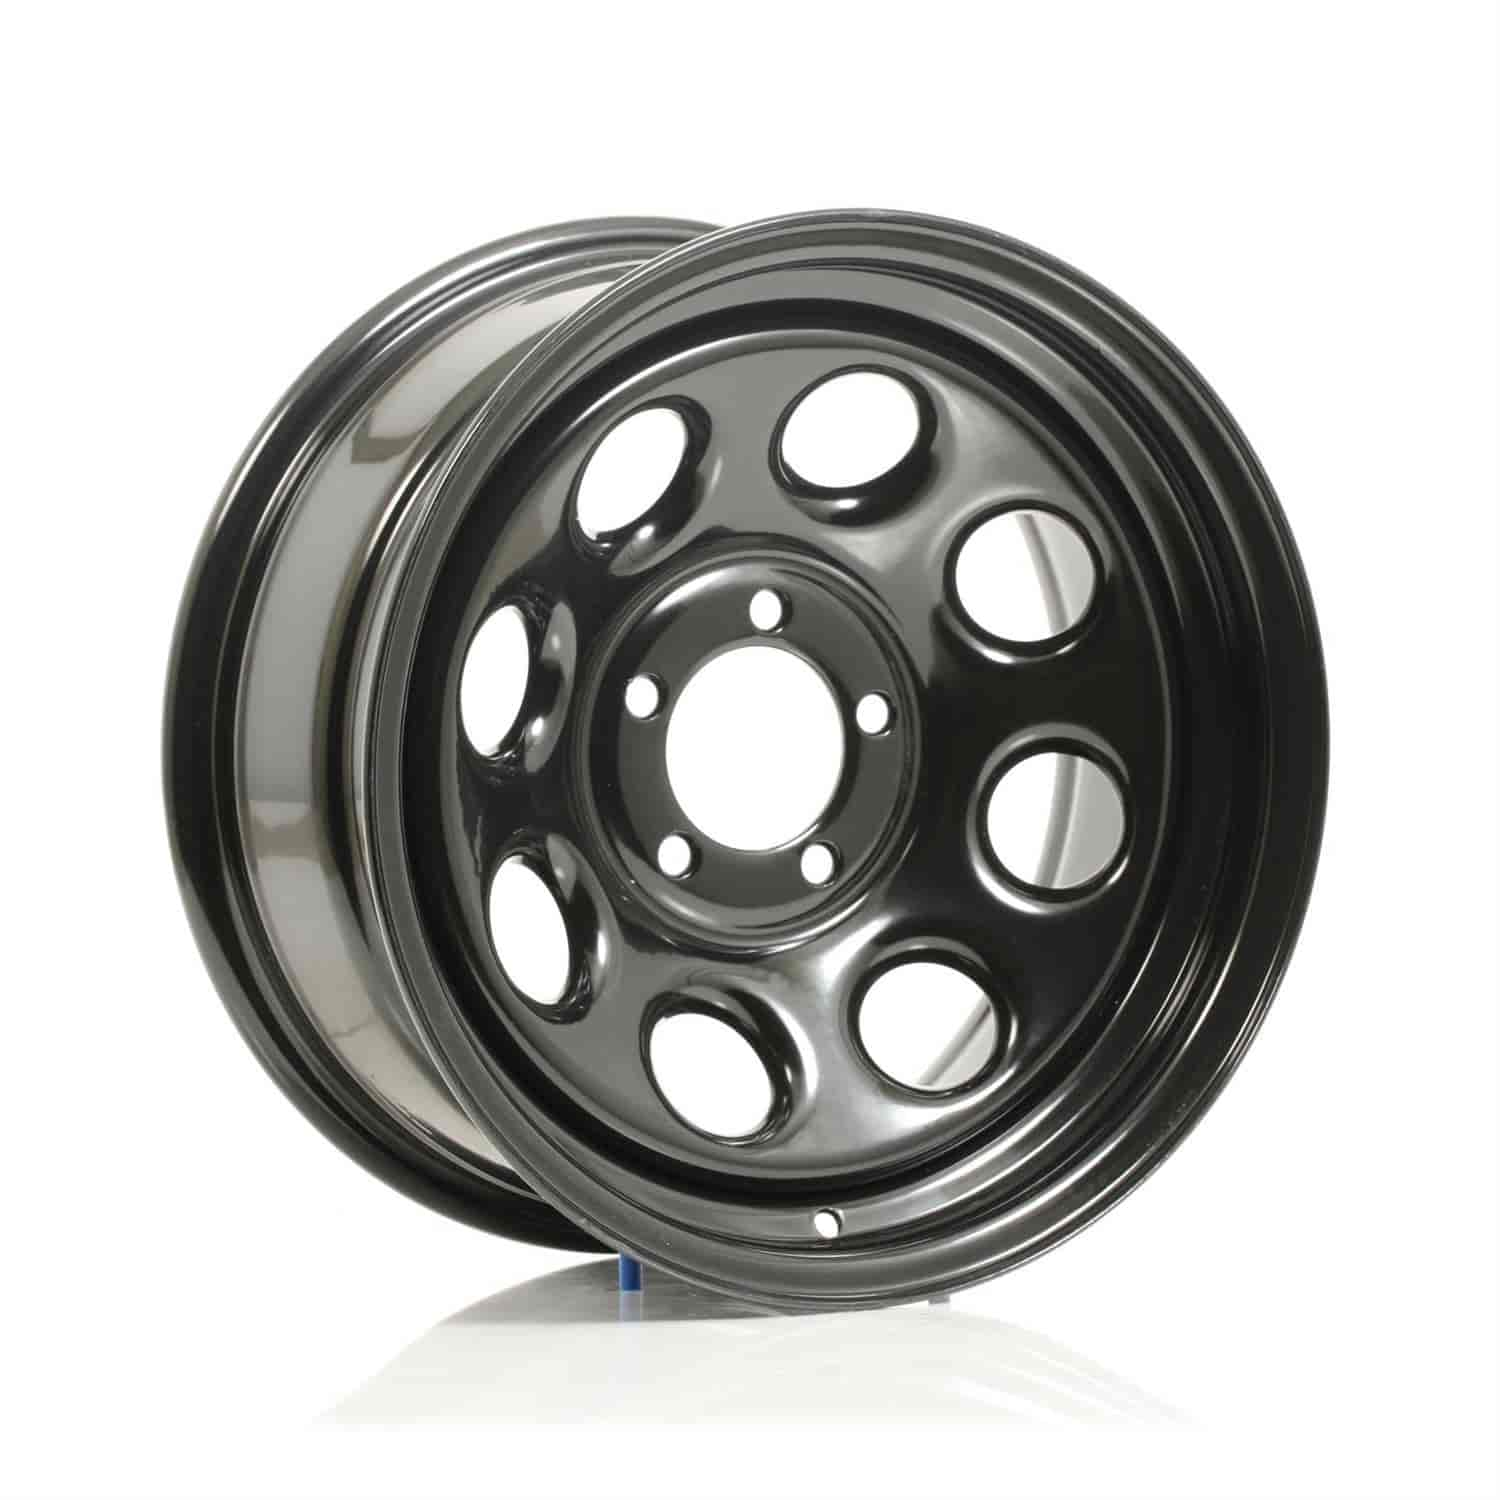 Cragar 3977734 - Cragar Black Soft 8 Wheels